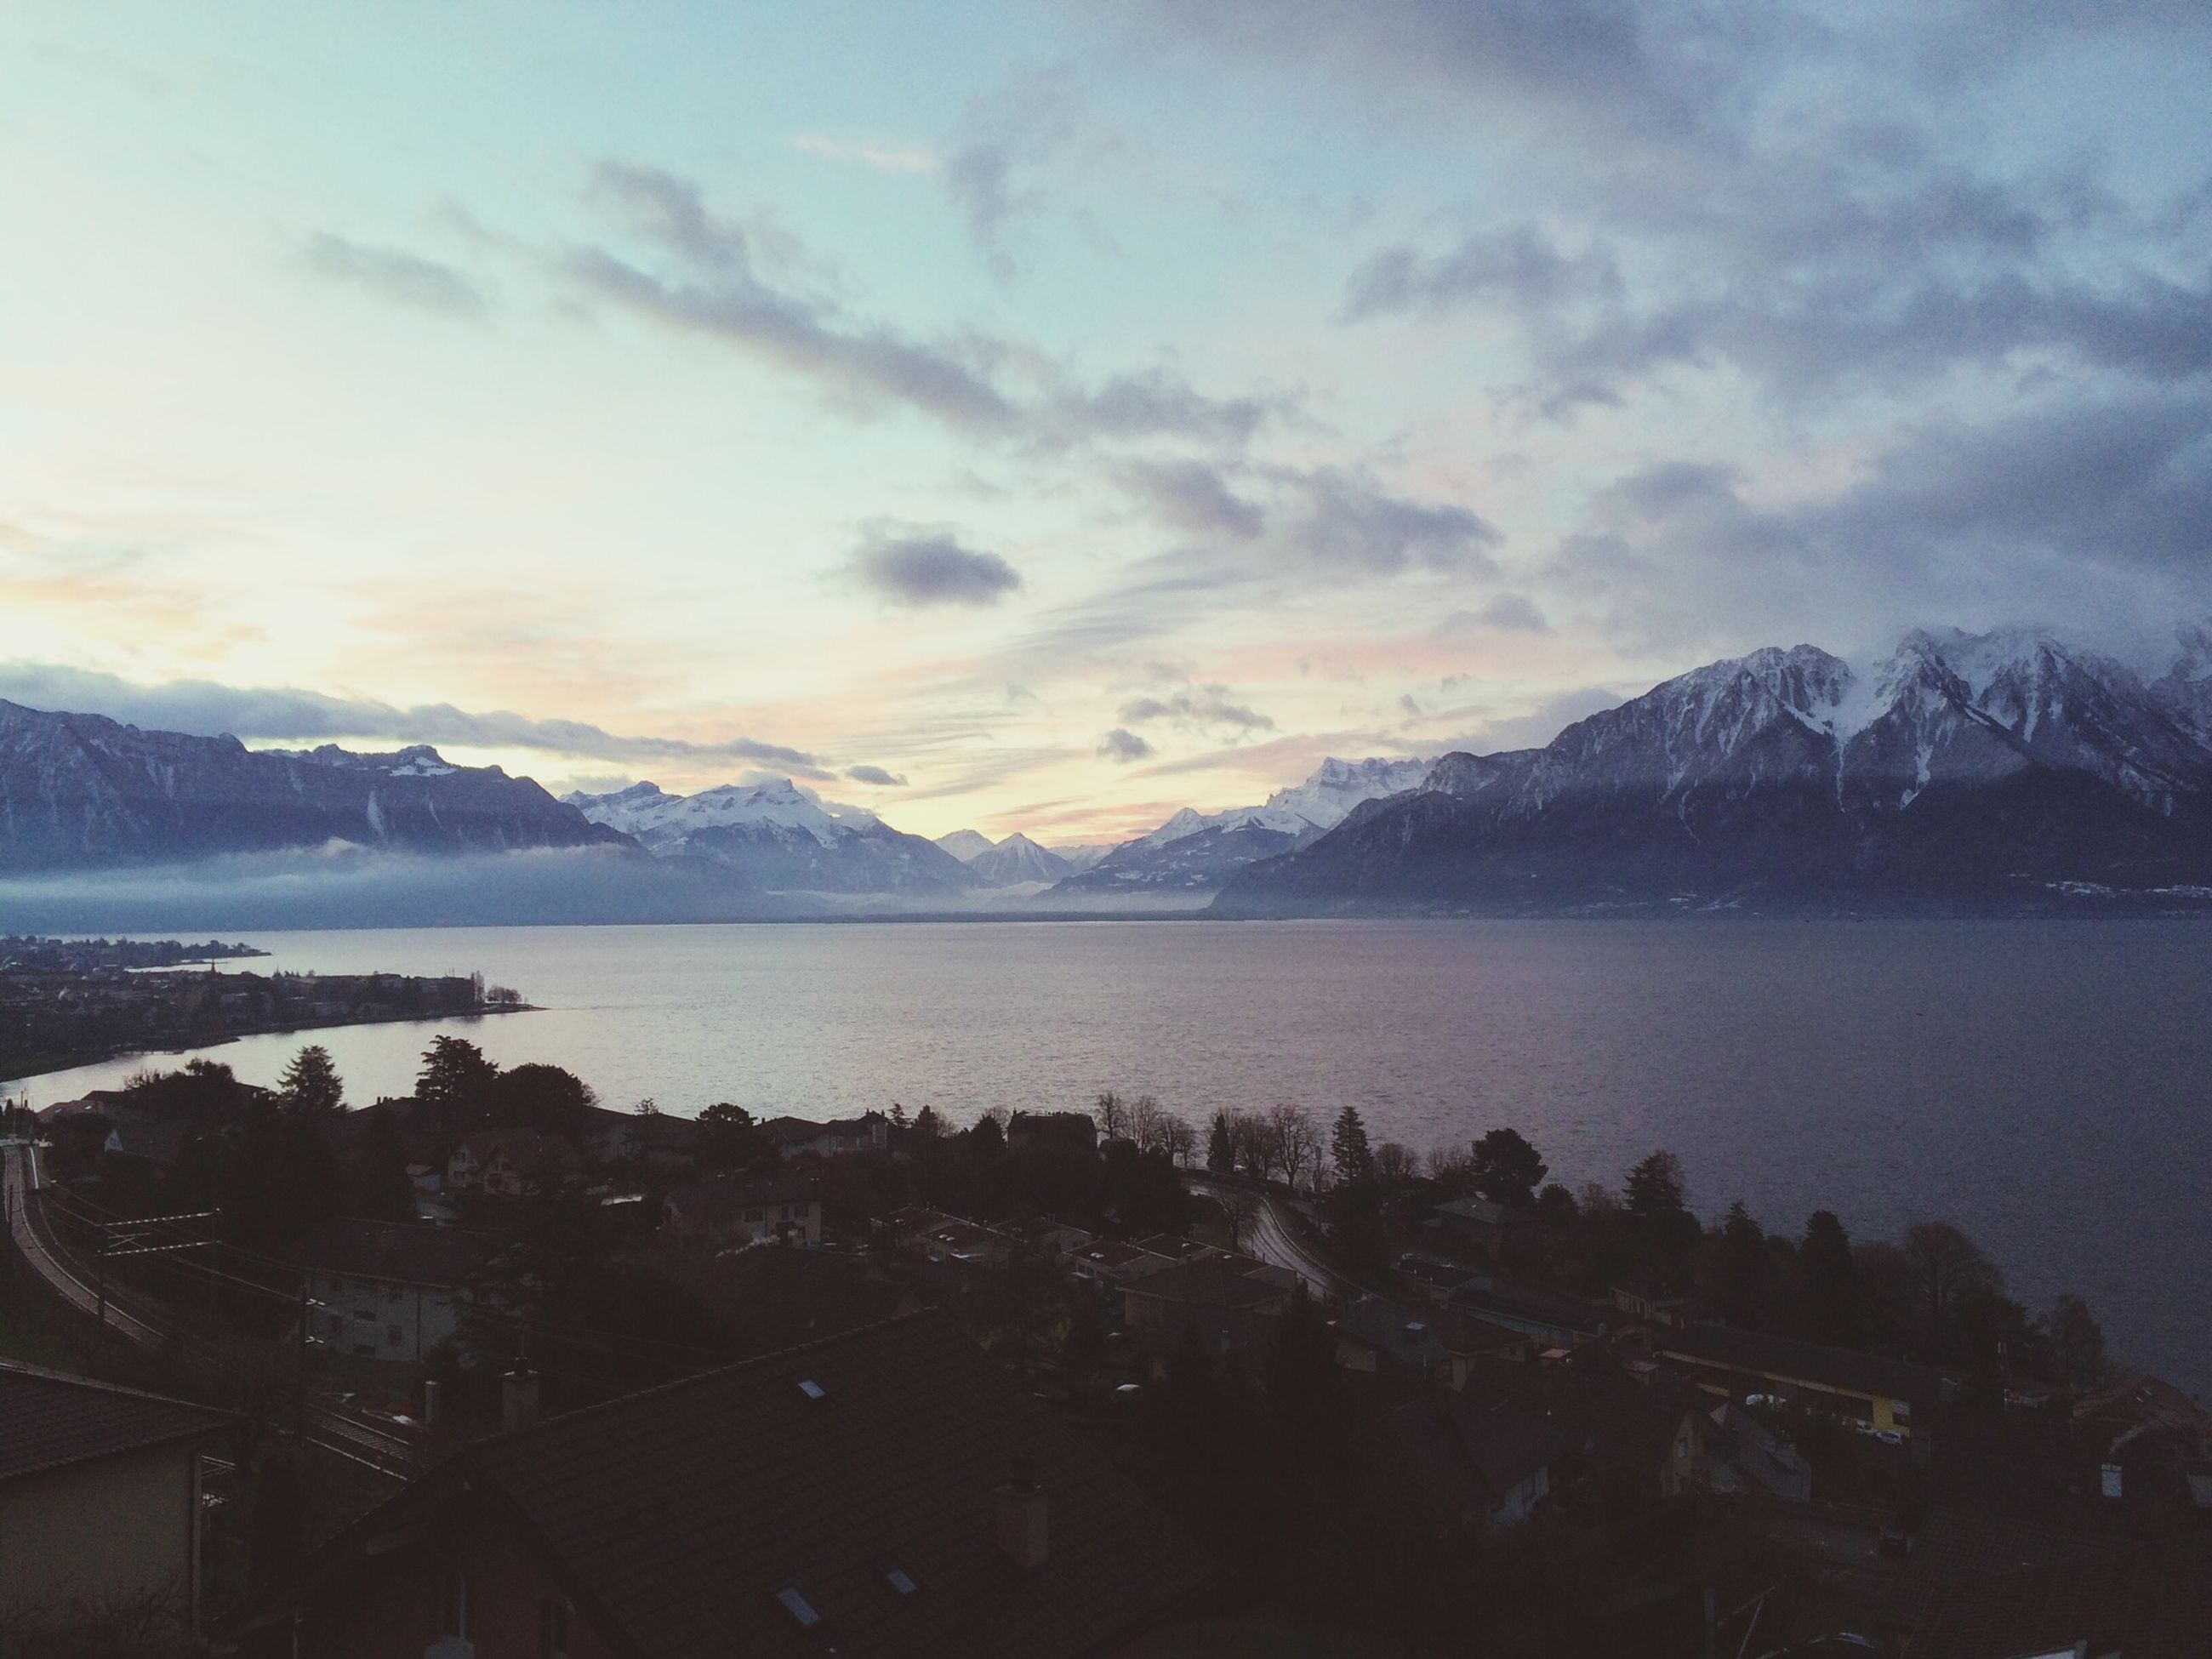 mountain, mountain range, scenics, tranquil scene, sky, water, tranquility, beauty in nature, lake, cloud - sky, nature, winter, idyllic, landscape, weather, cold temperature, cloudy, snow, cloud, non-urban scene